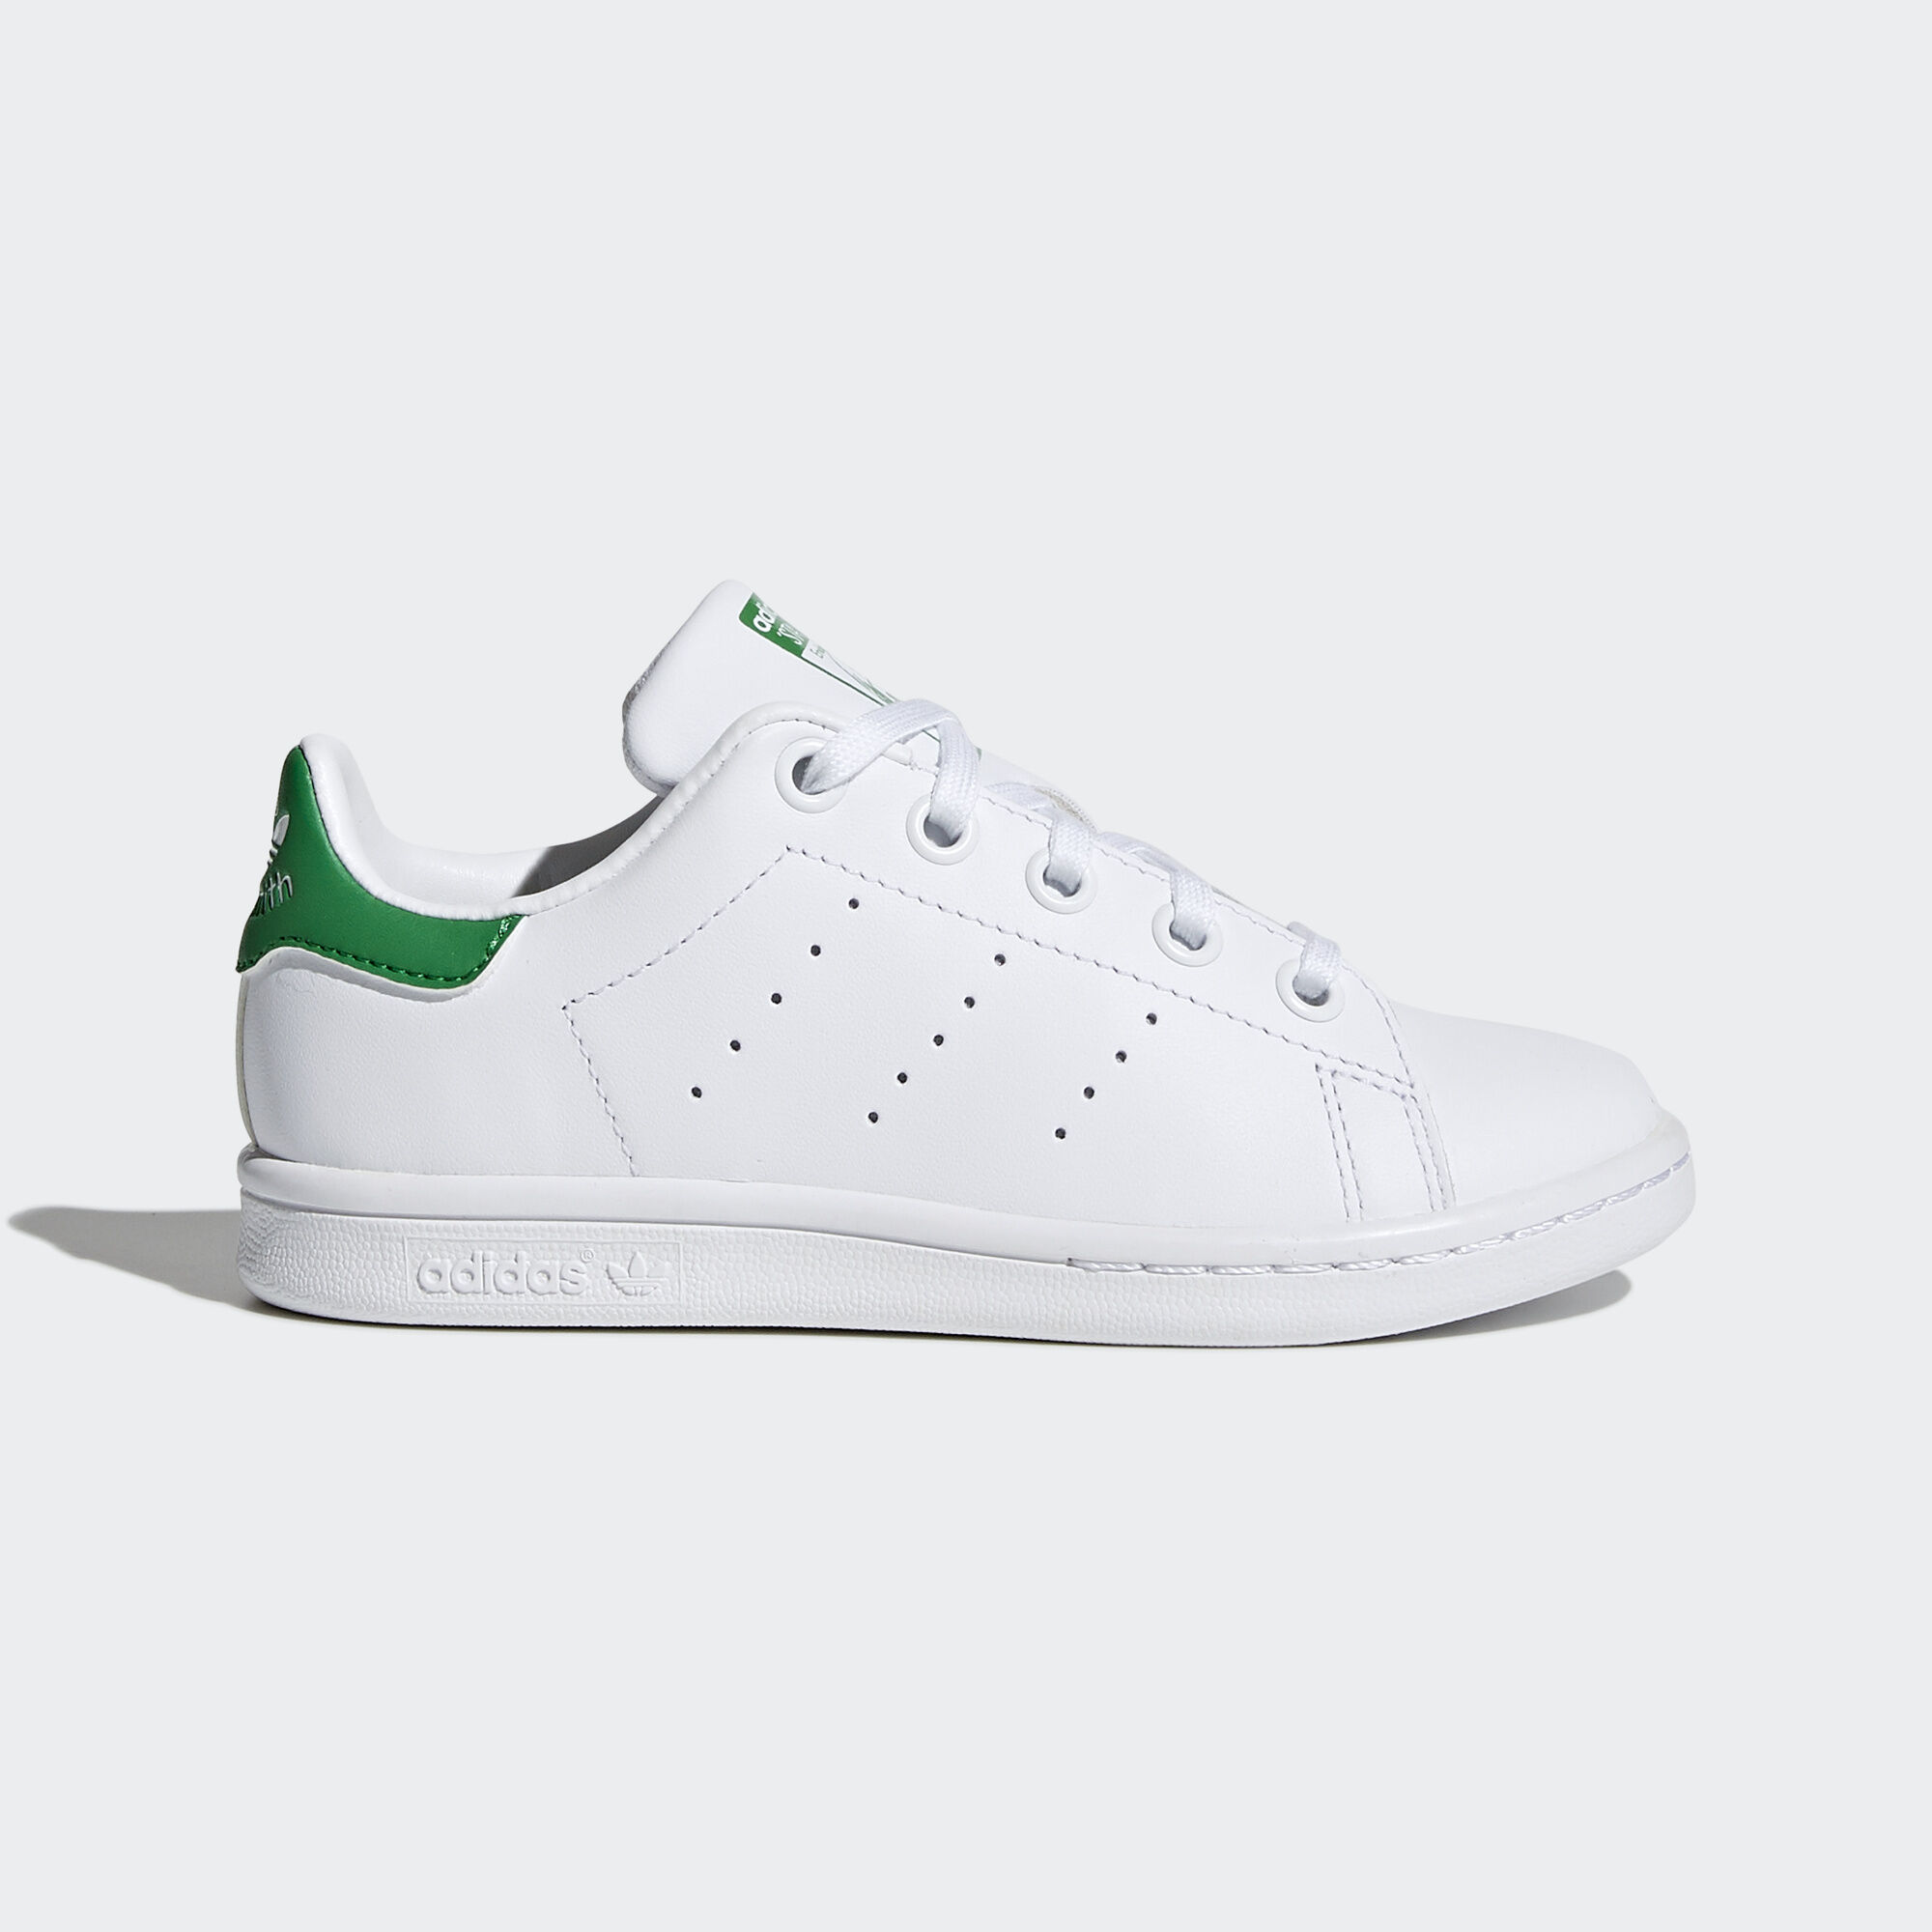 Stan Smith Adidas White